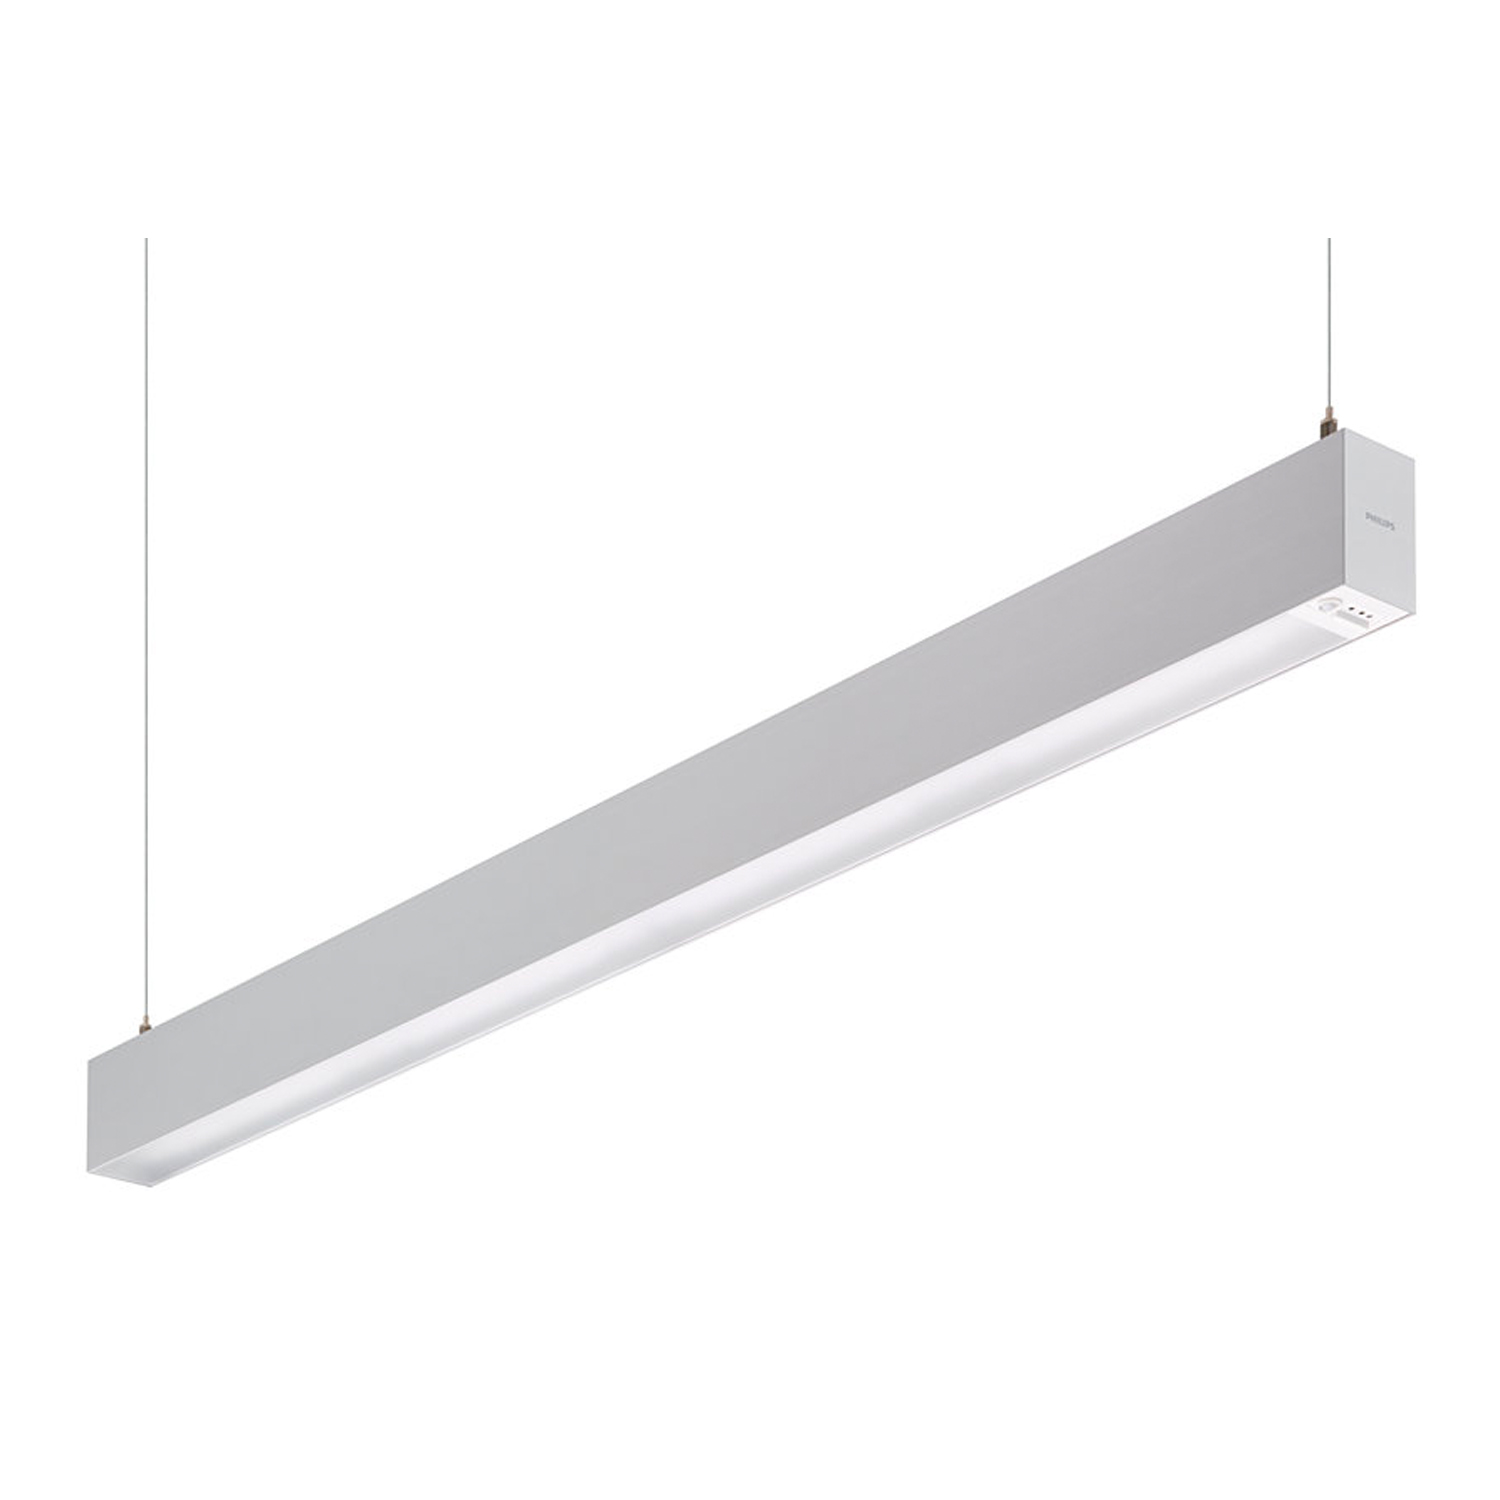 Philips Trueline LED Panel SP530P 28W 940 4000lm - Cool White